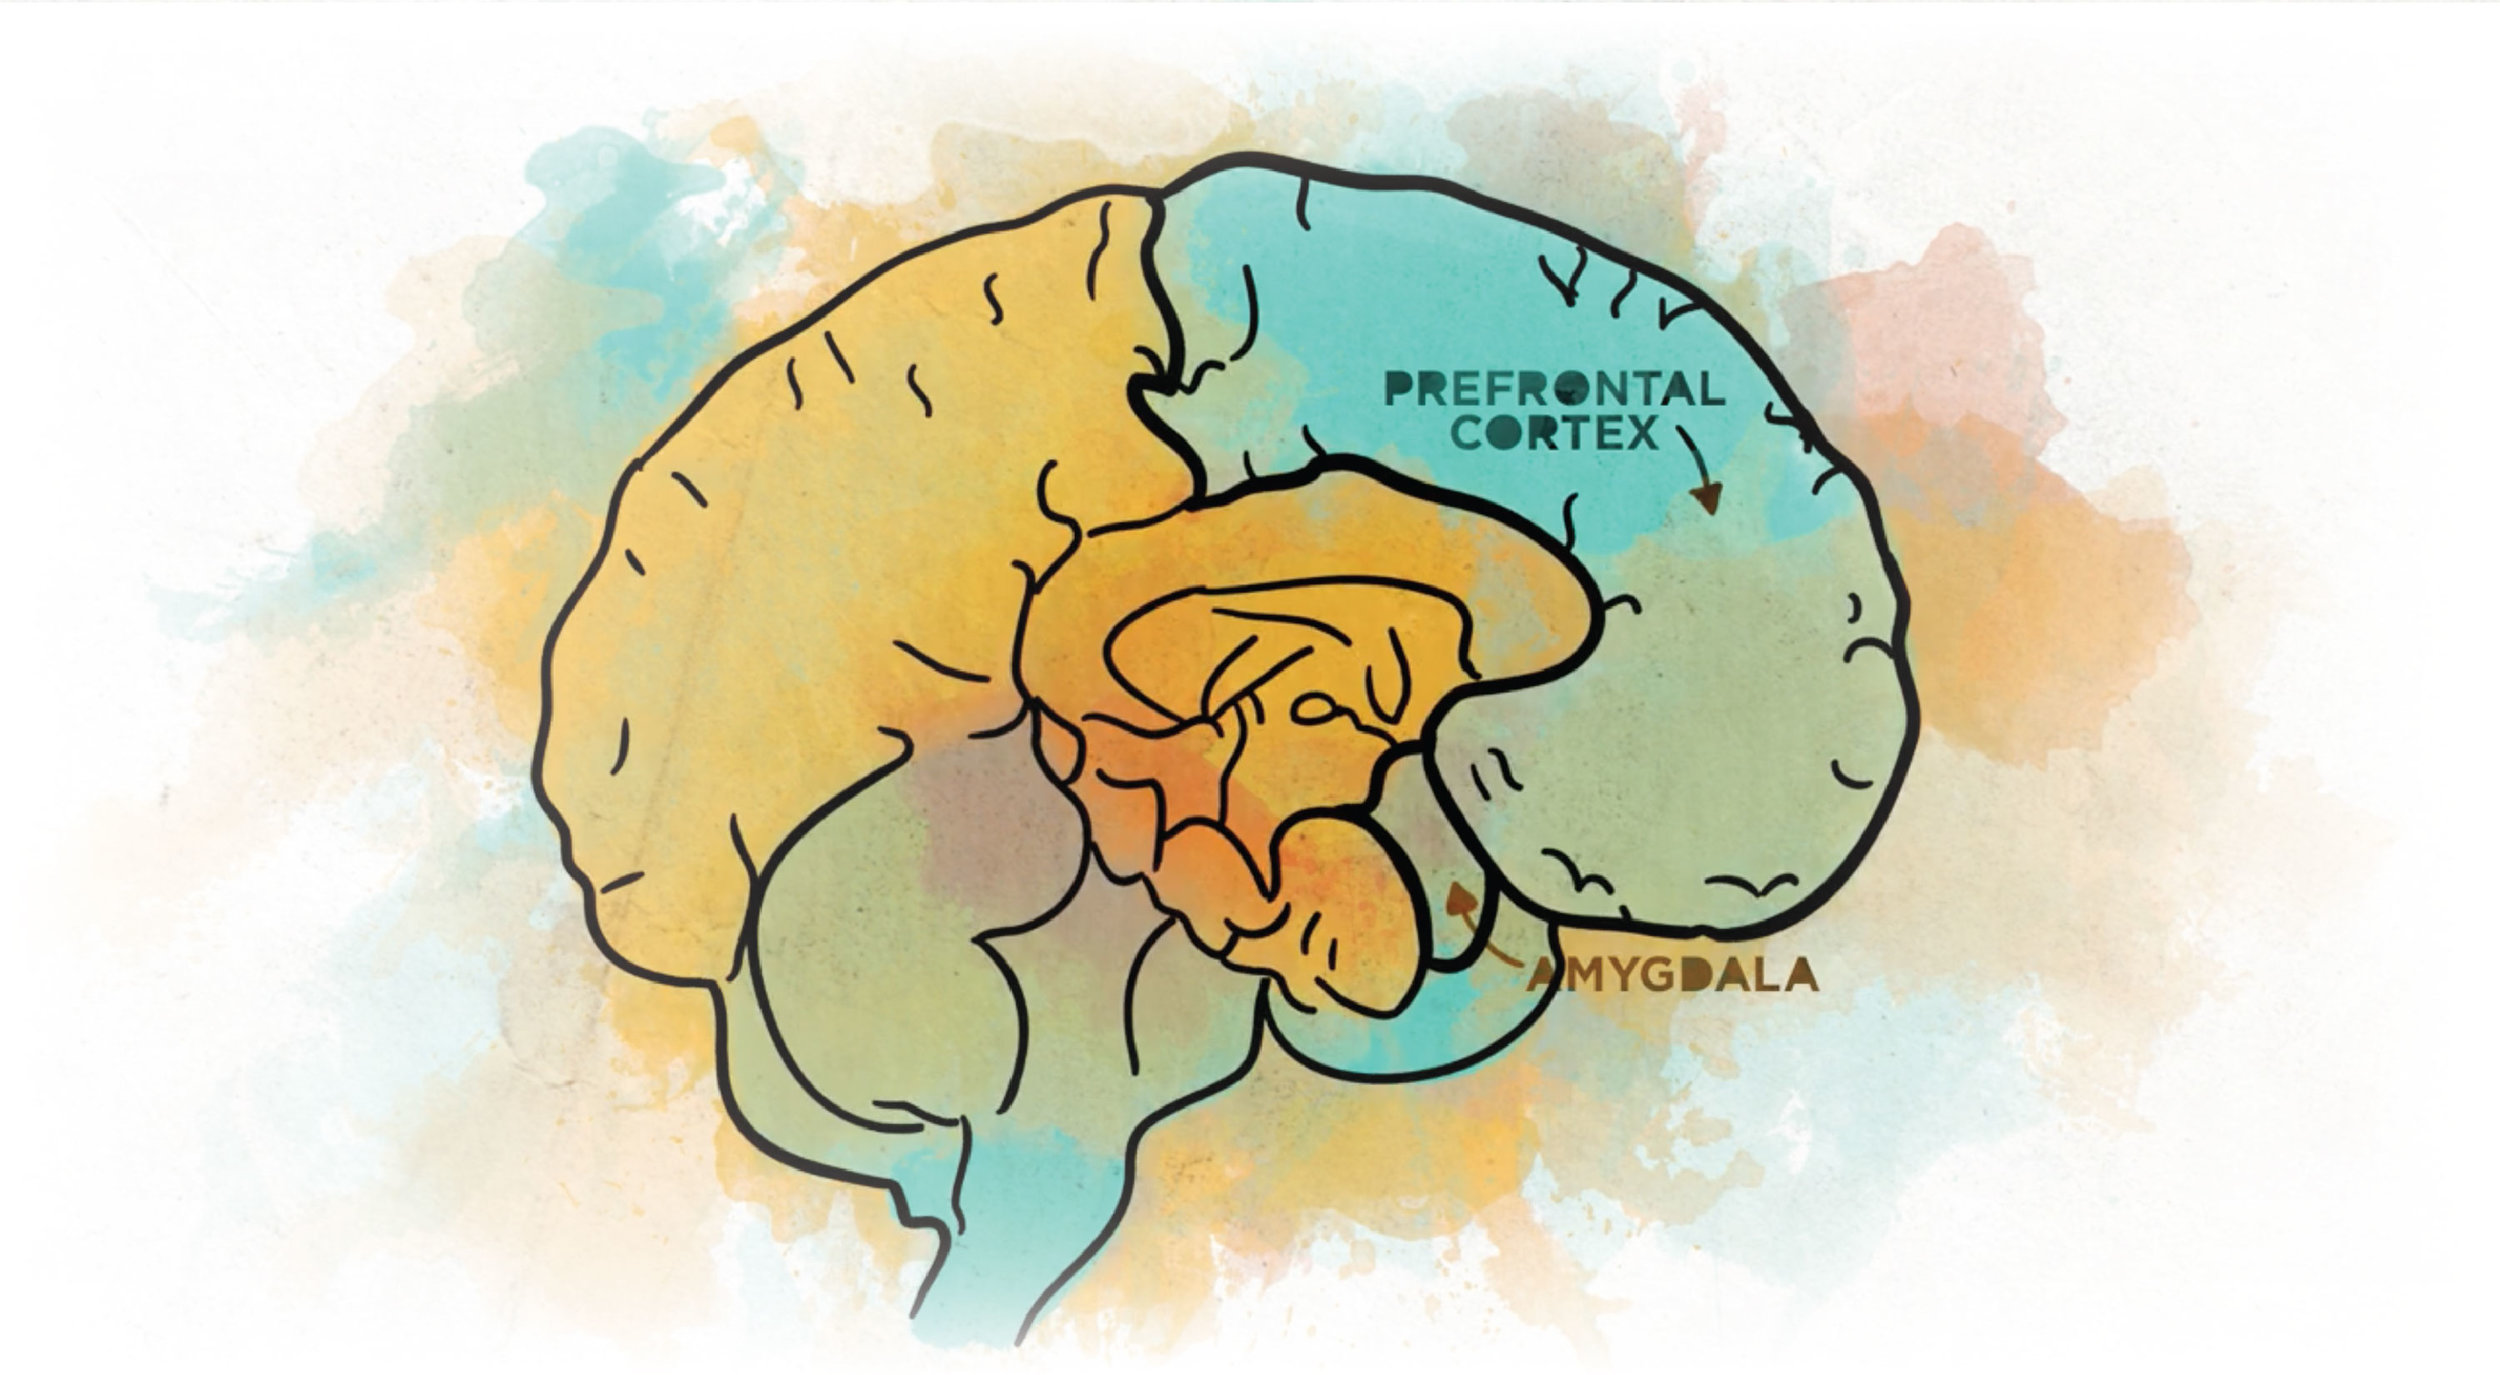 Creative brain - When you do art and create you are actually making neuro-pathways in your brain that help you regain access to your critical thinking center, and with that normal self-awareness, emotion regulation, and interpersonal skills.